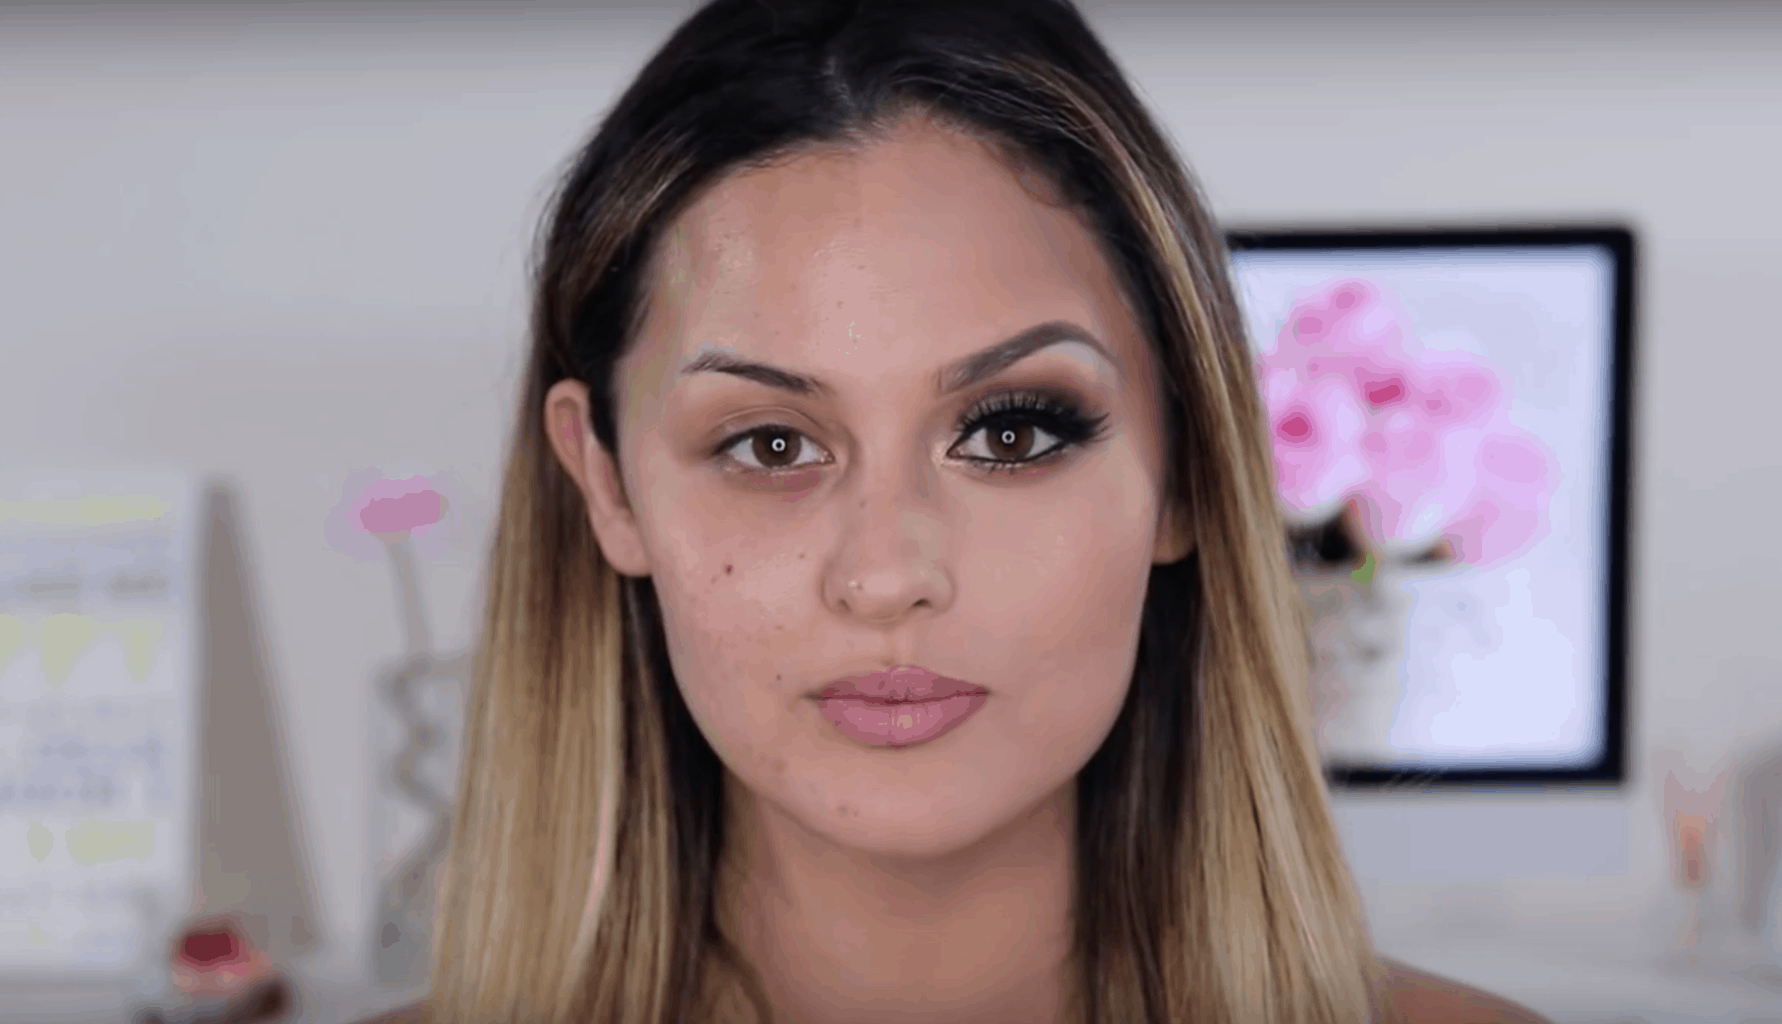 A beauty blogger wearing makeup on half of her face and no makeup on the other half